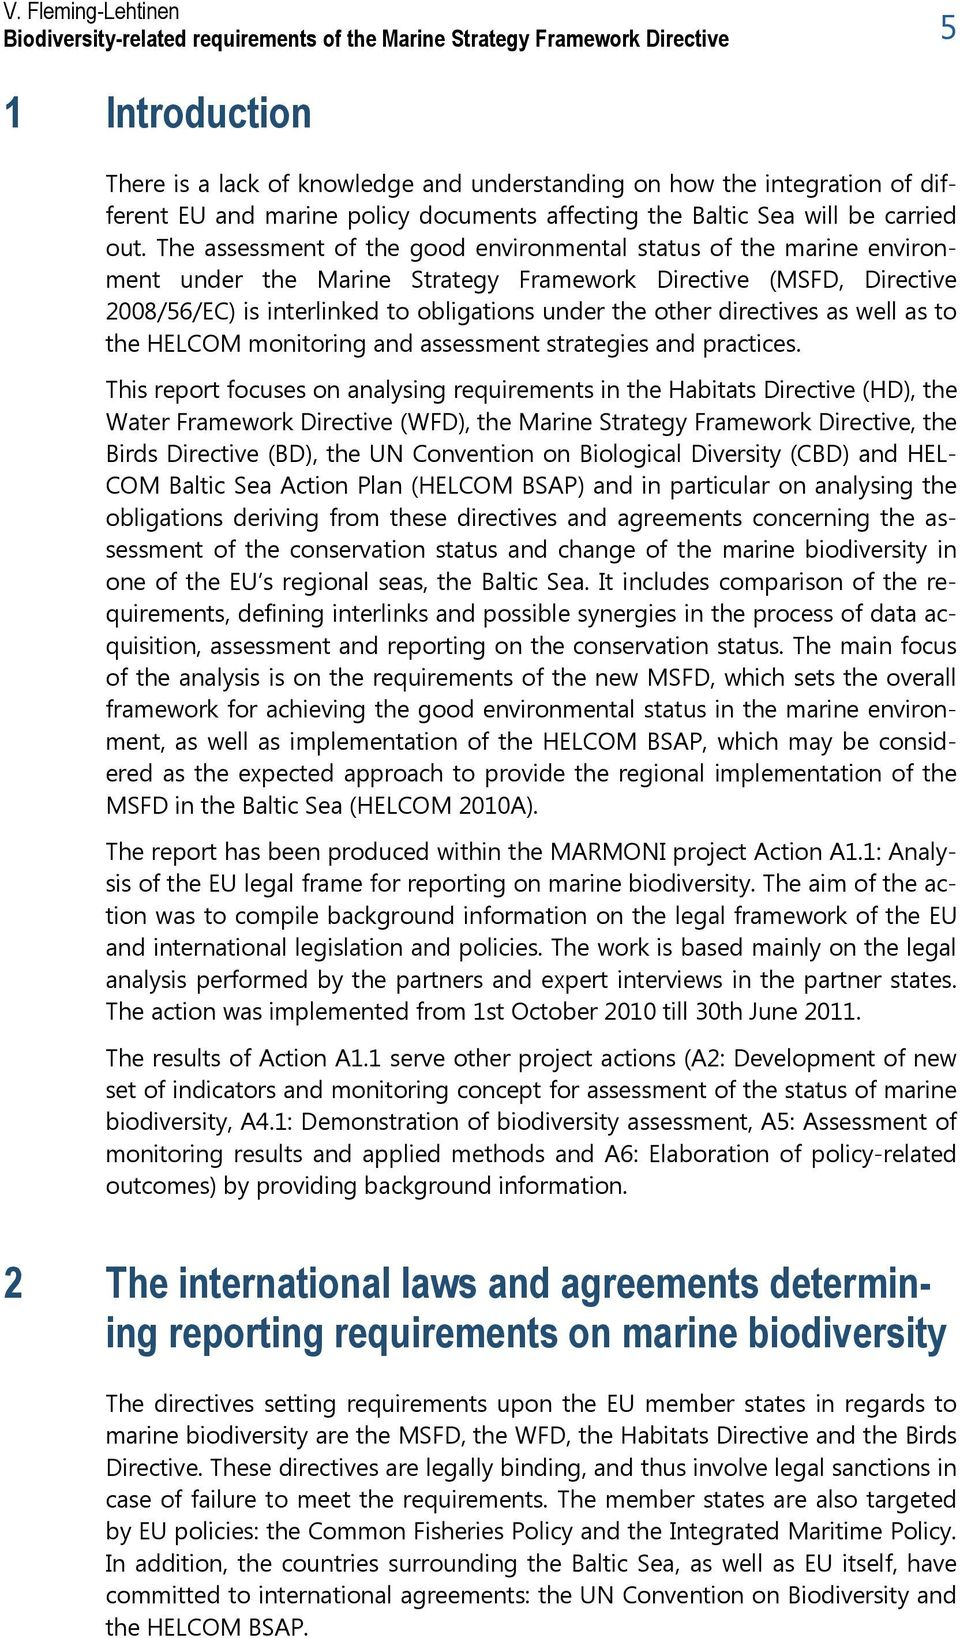 The assessment of the good environmental status of the marine environment under the Marine Strategy Framework Directive (MSFD, Directive 2008/56/EC) is interlinked to obligations under the other